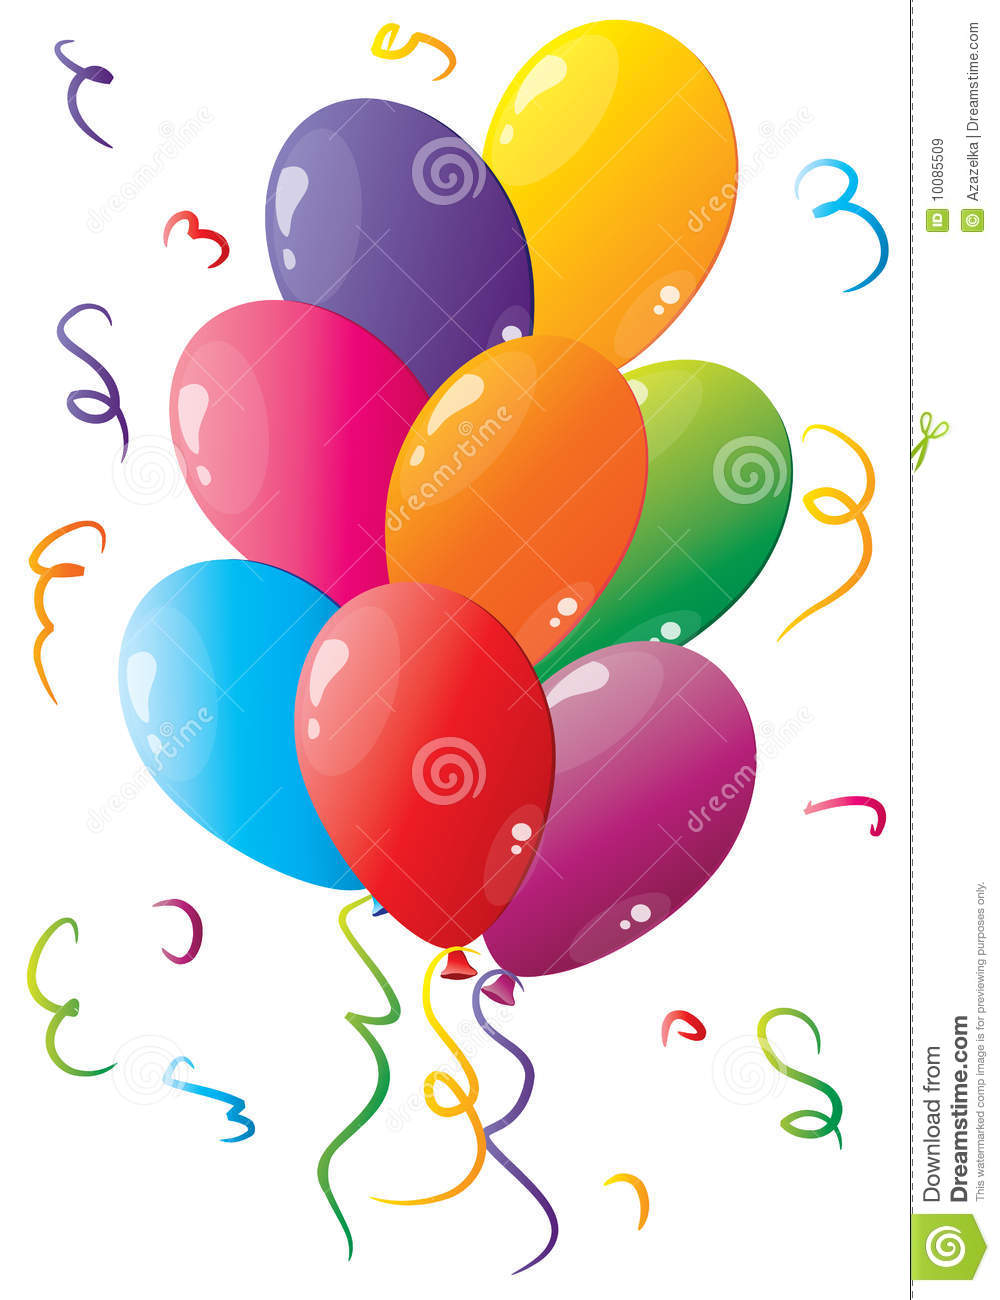 Colorful Balloons Royalty Free Stock Images - Image: 10085509